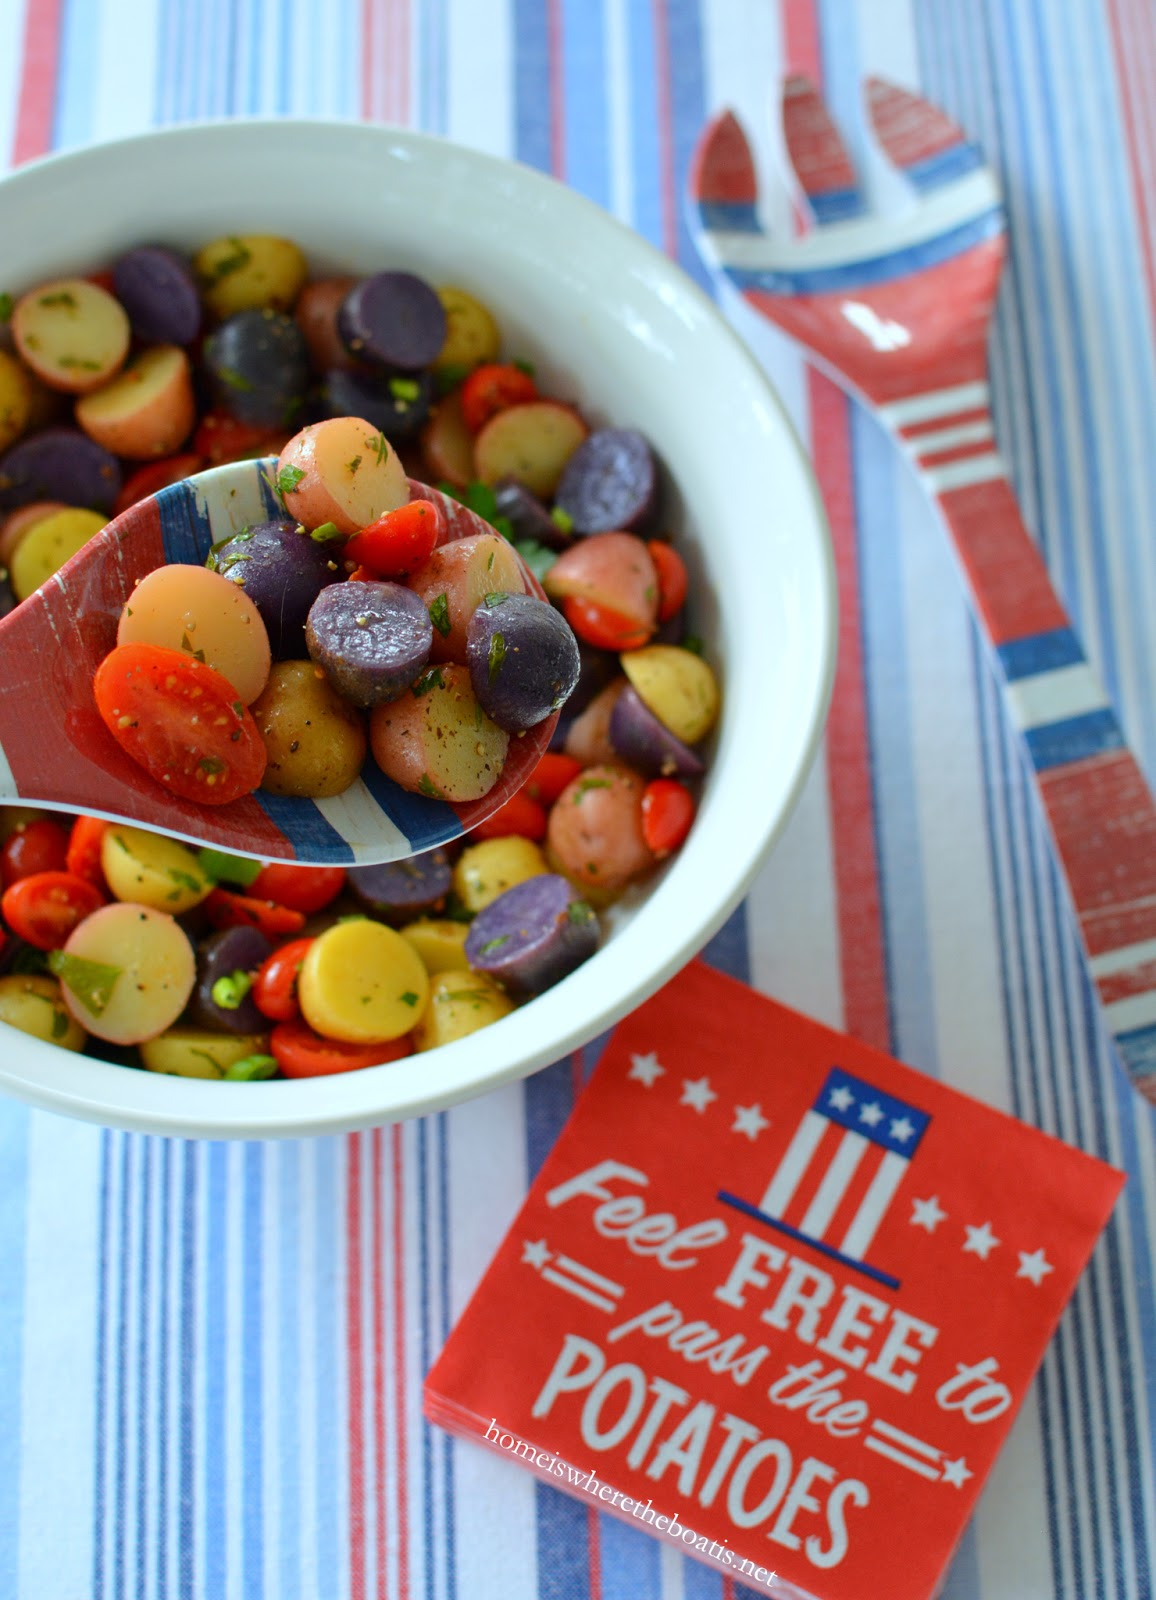 Patriotic potato salad! What's not to like about potato salad?